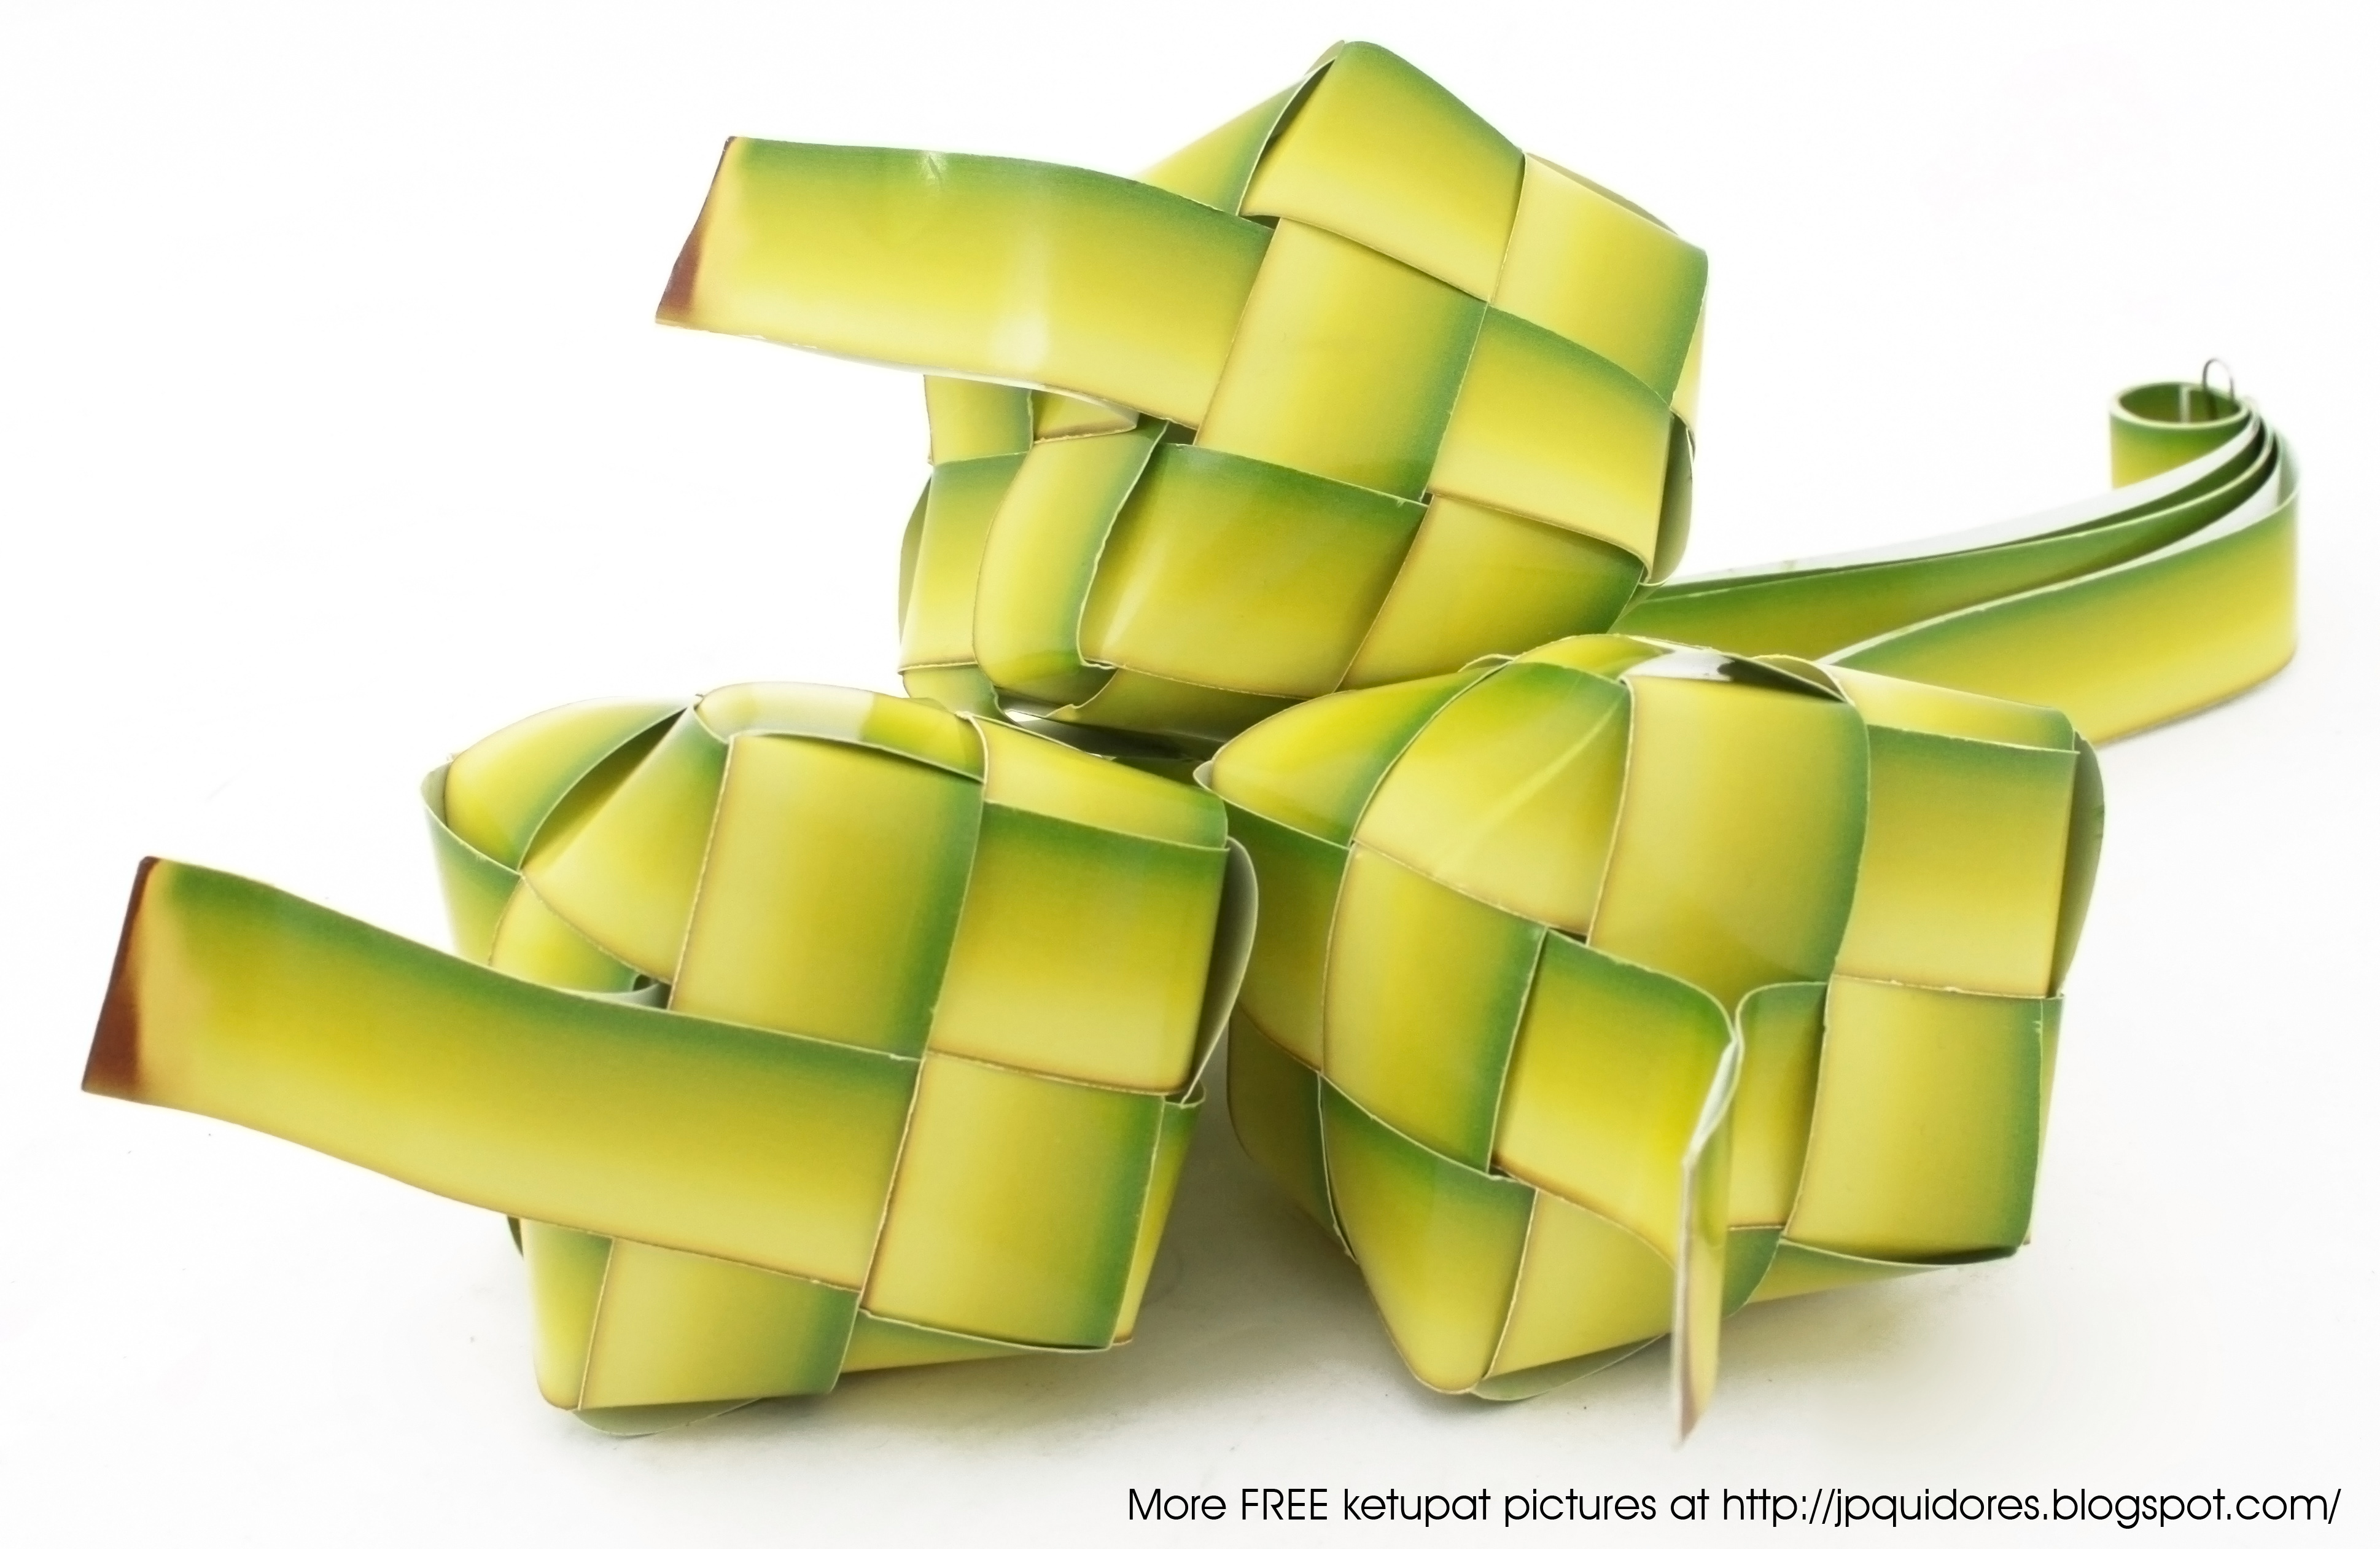 Ketupat, the most synonymous symbol with Hari Raya